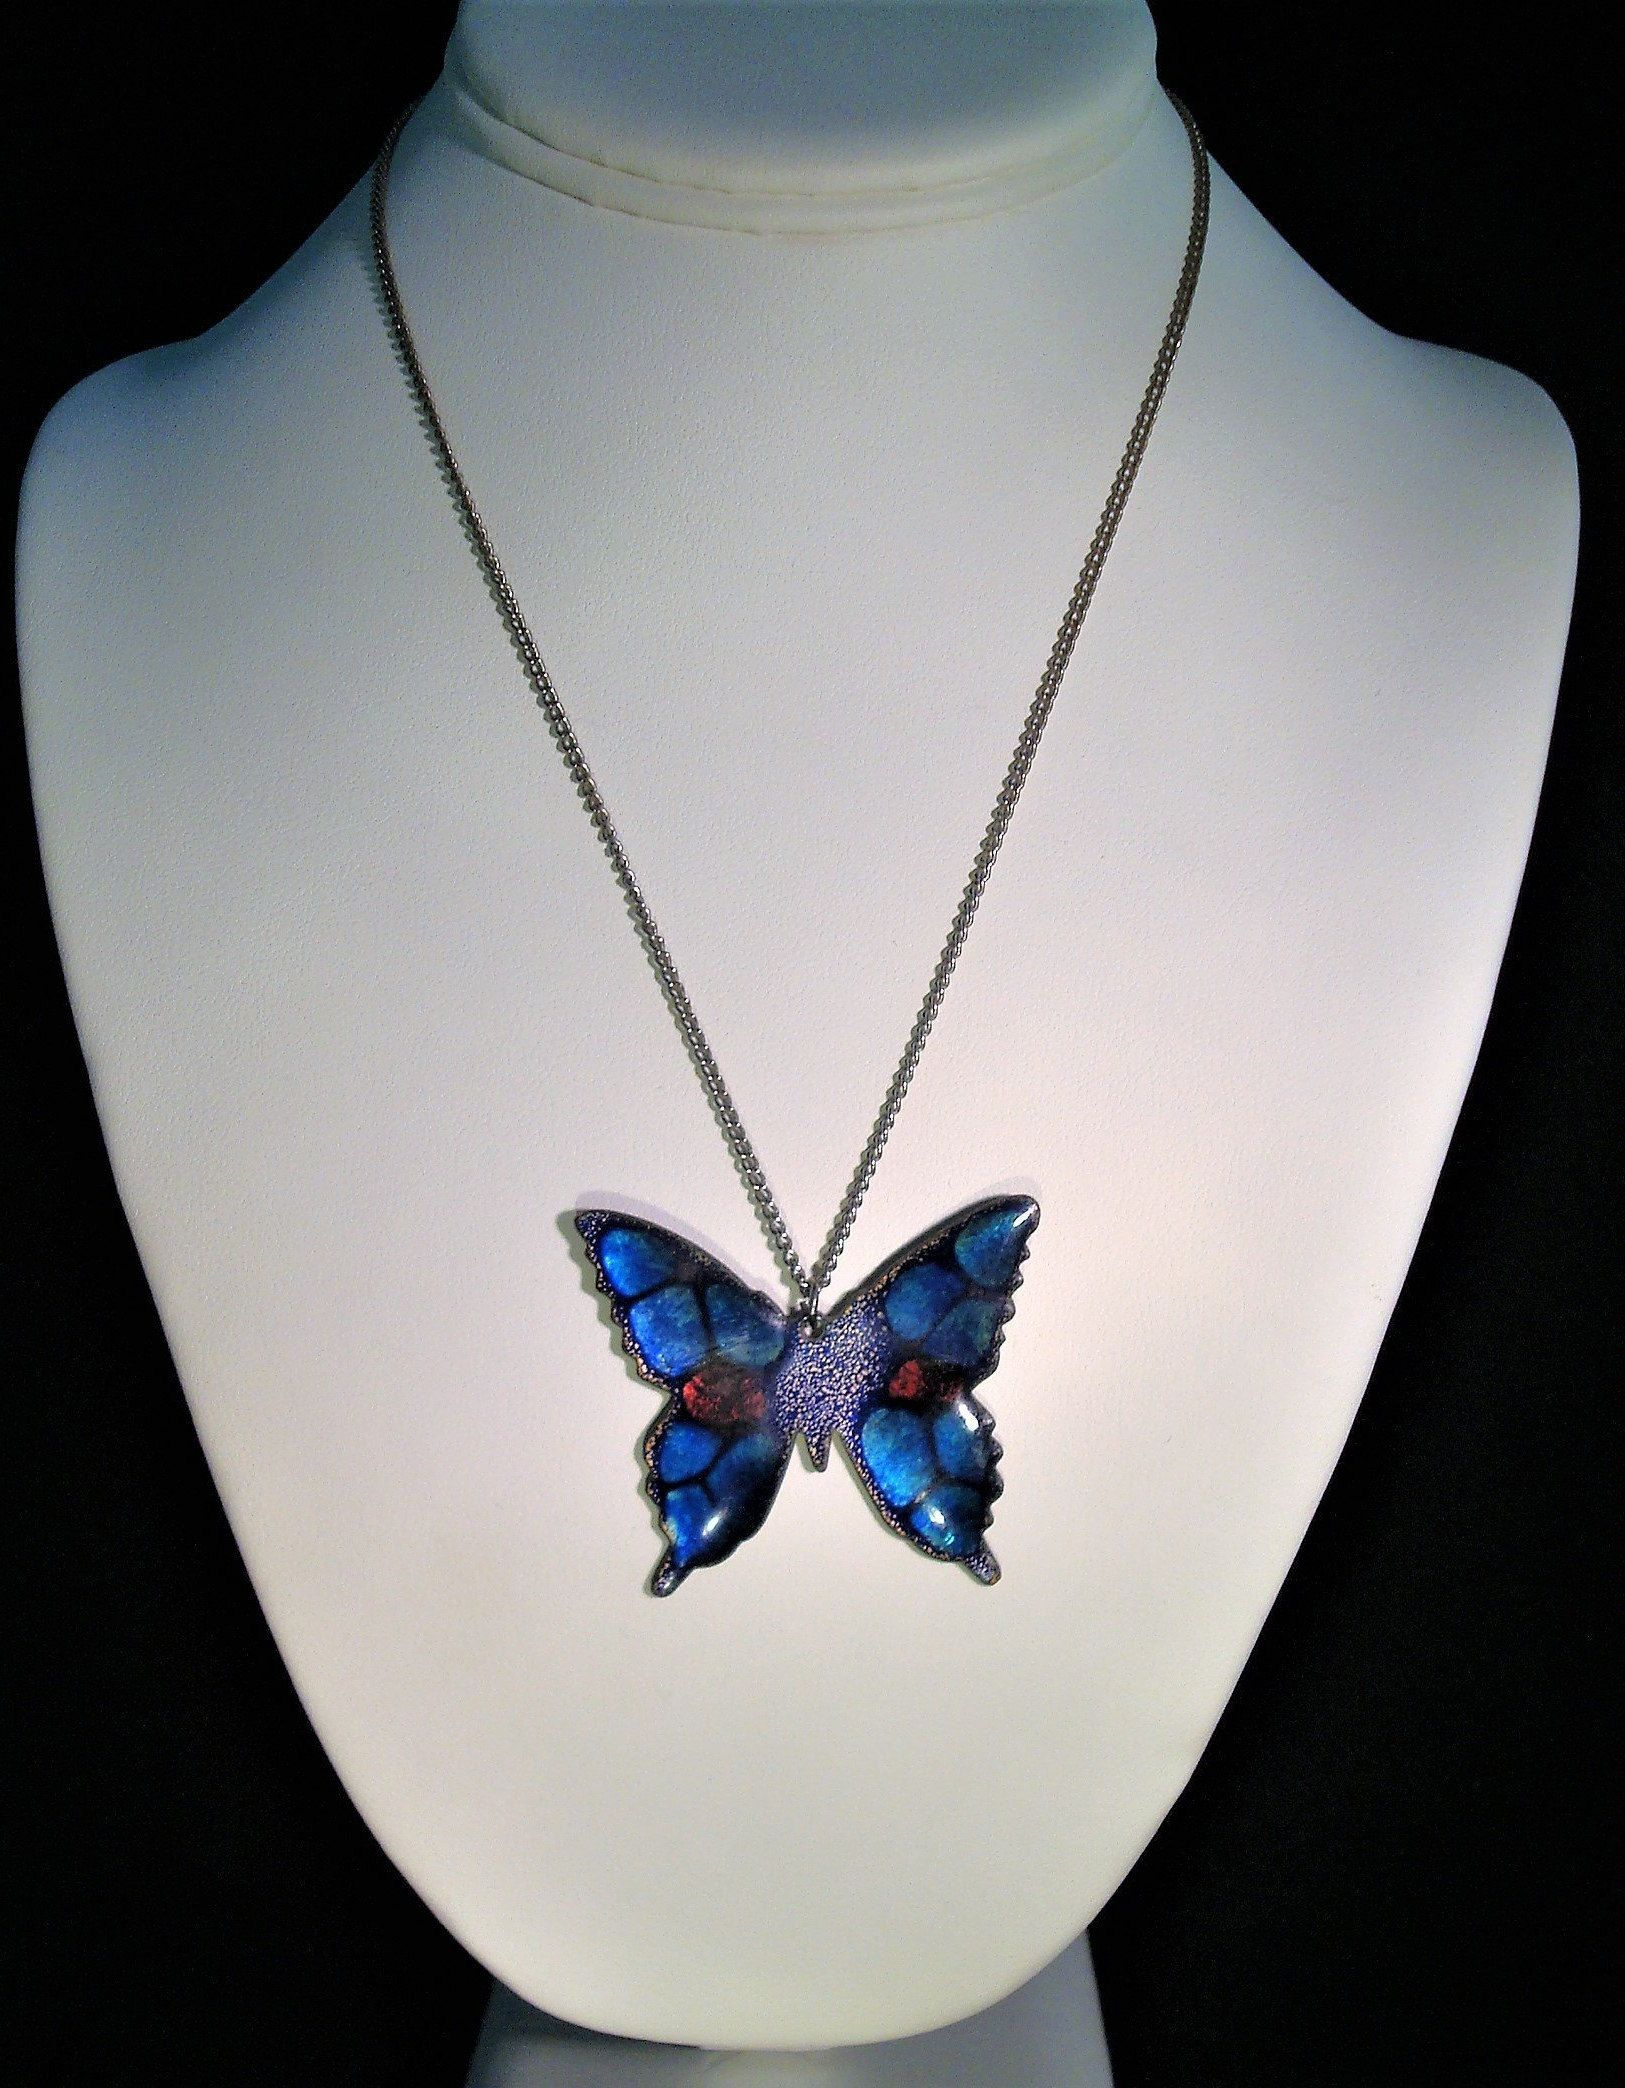 Vintage Enamel Butterfly Necklace – Beautiful Blue, Purple Red Throughout Recent Blue Pavé Butterfly Brooch Necklaces (View 8 of 25)